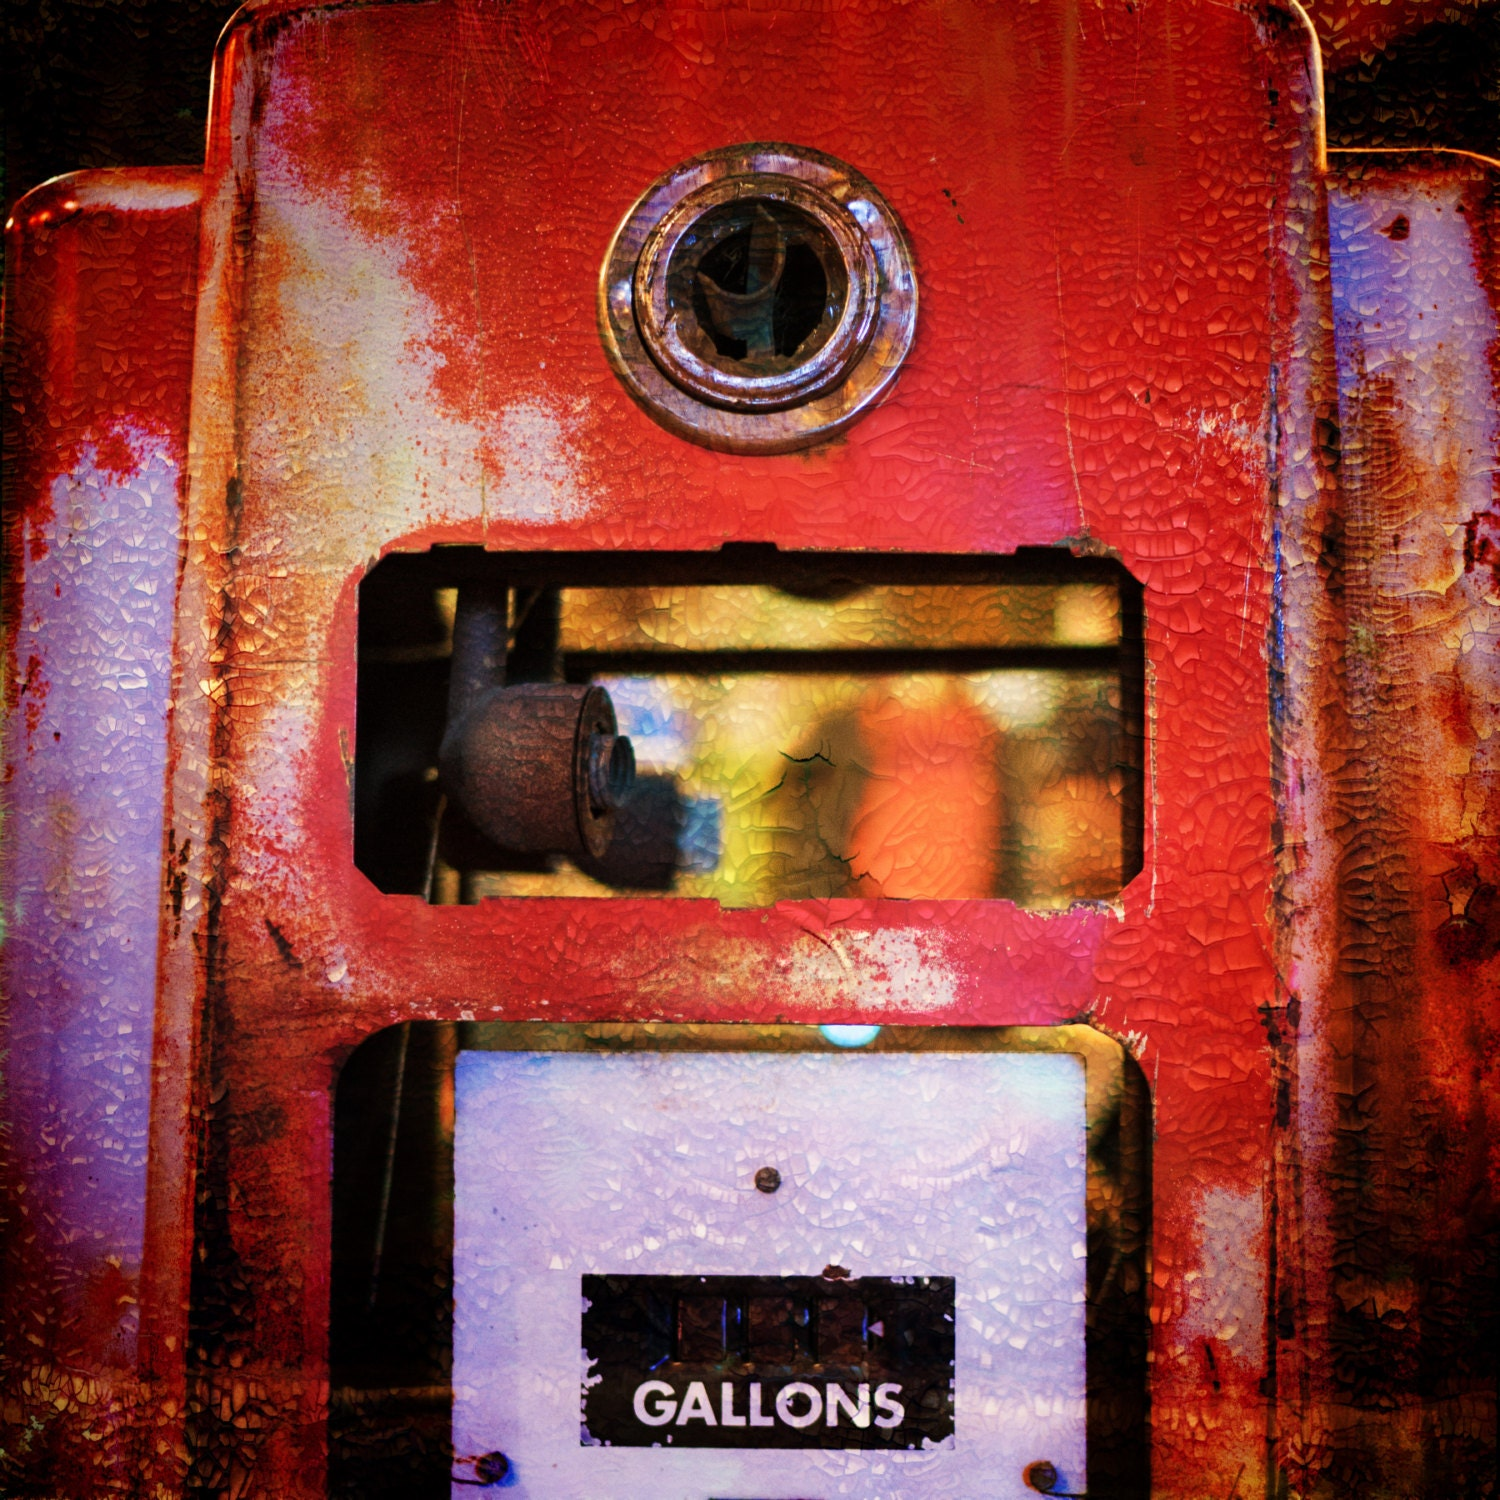 Antique red gas pump, Nashville retro and vintage collectable shop,  artistic street photography